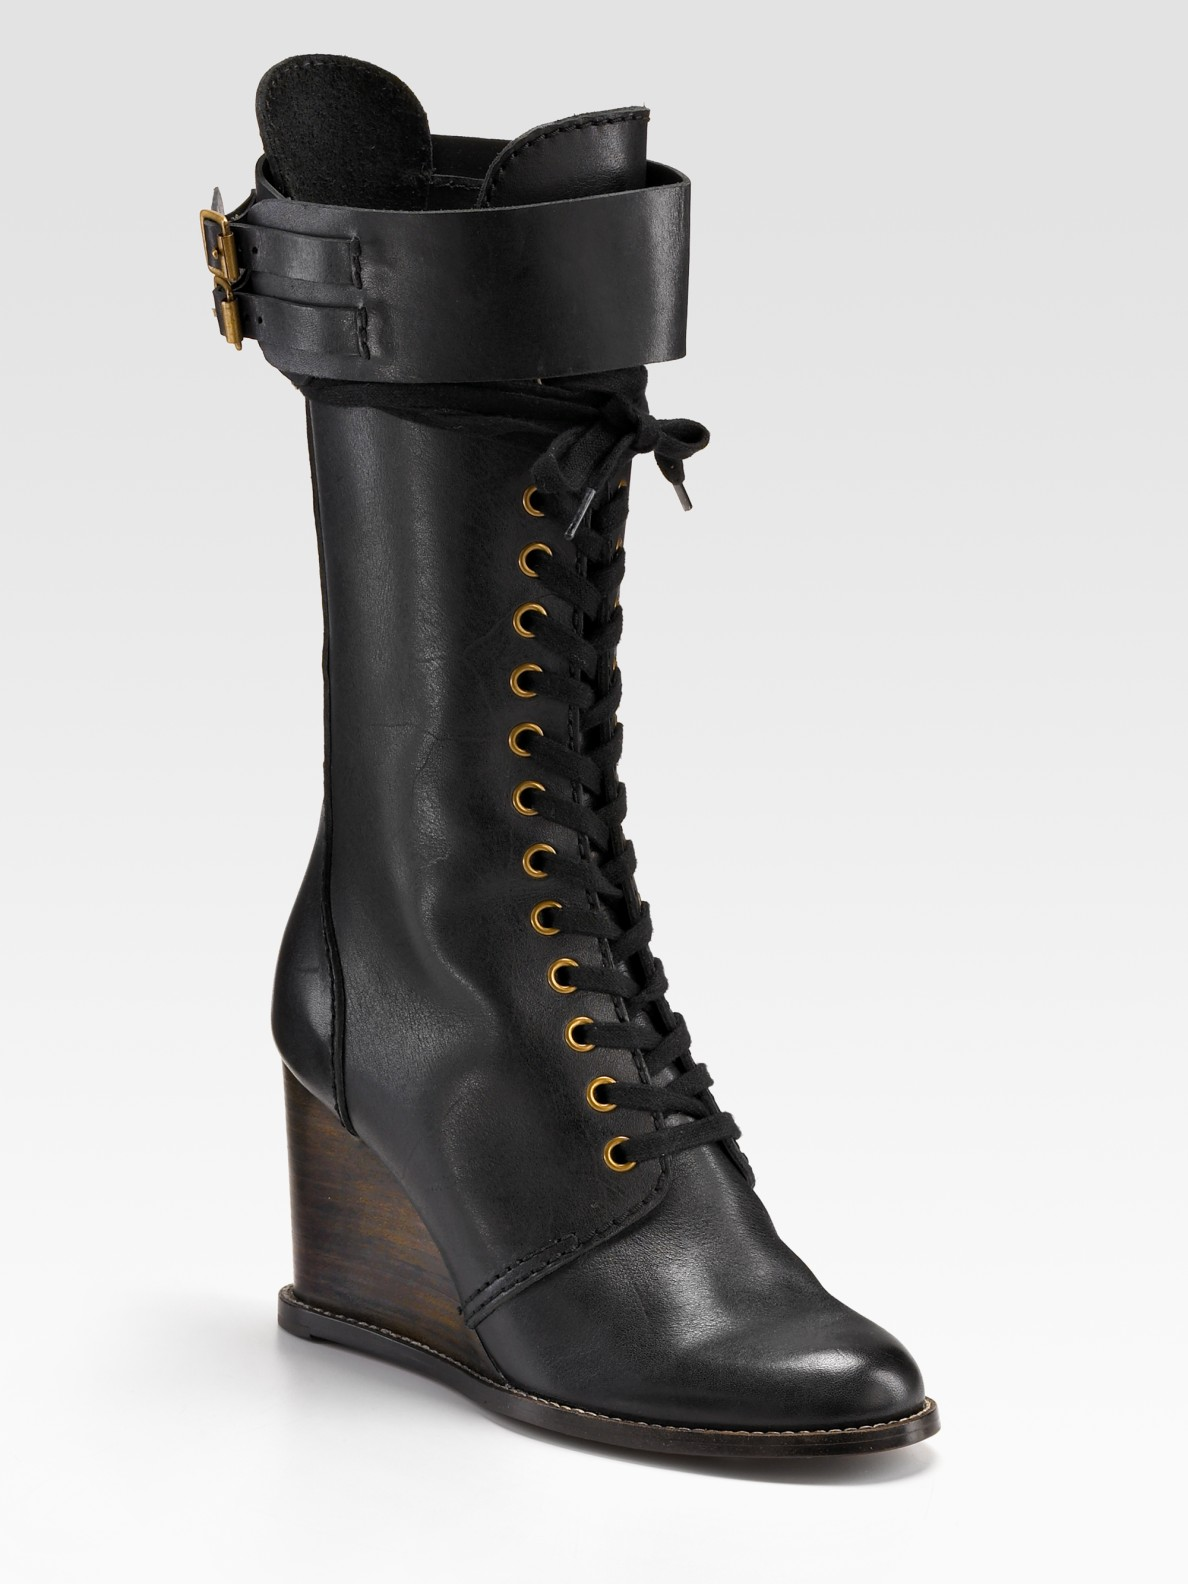 see by chlo 233 lace up wedge boots in black lyst